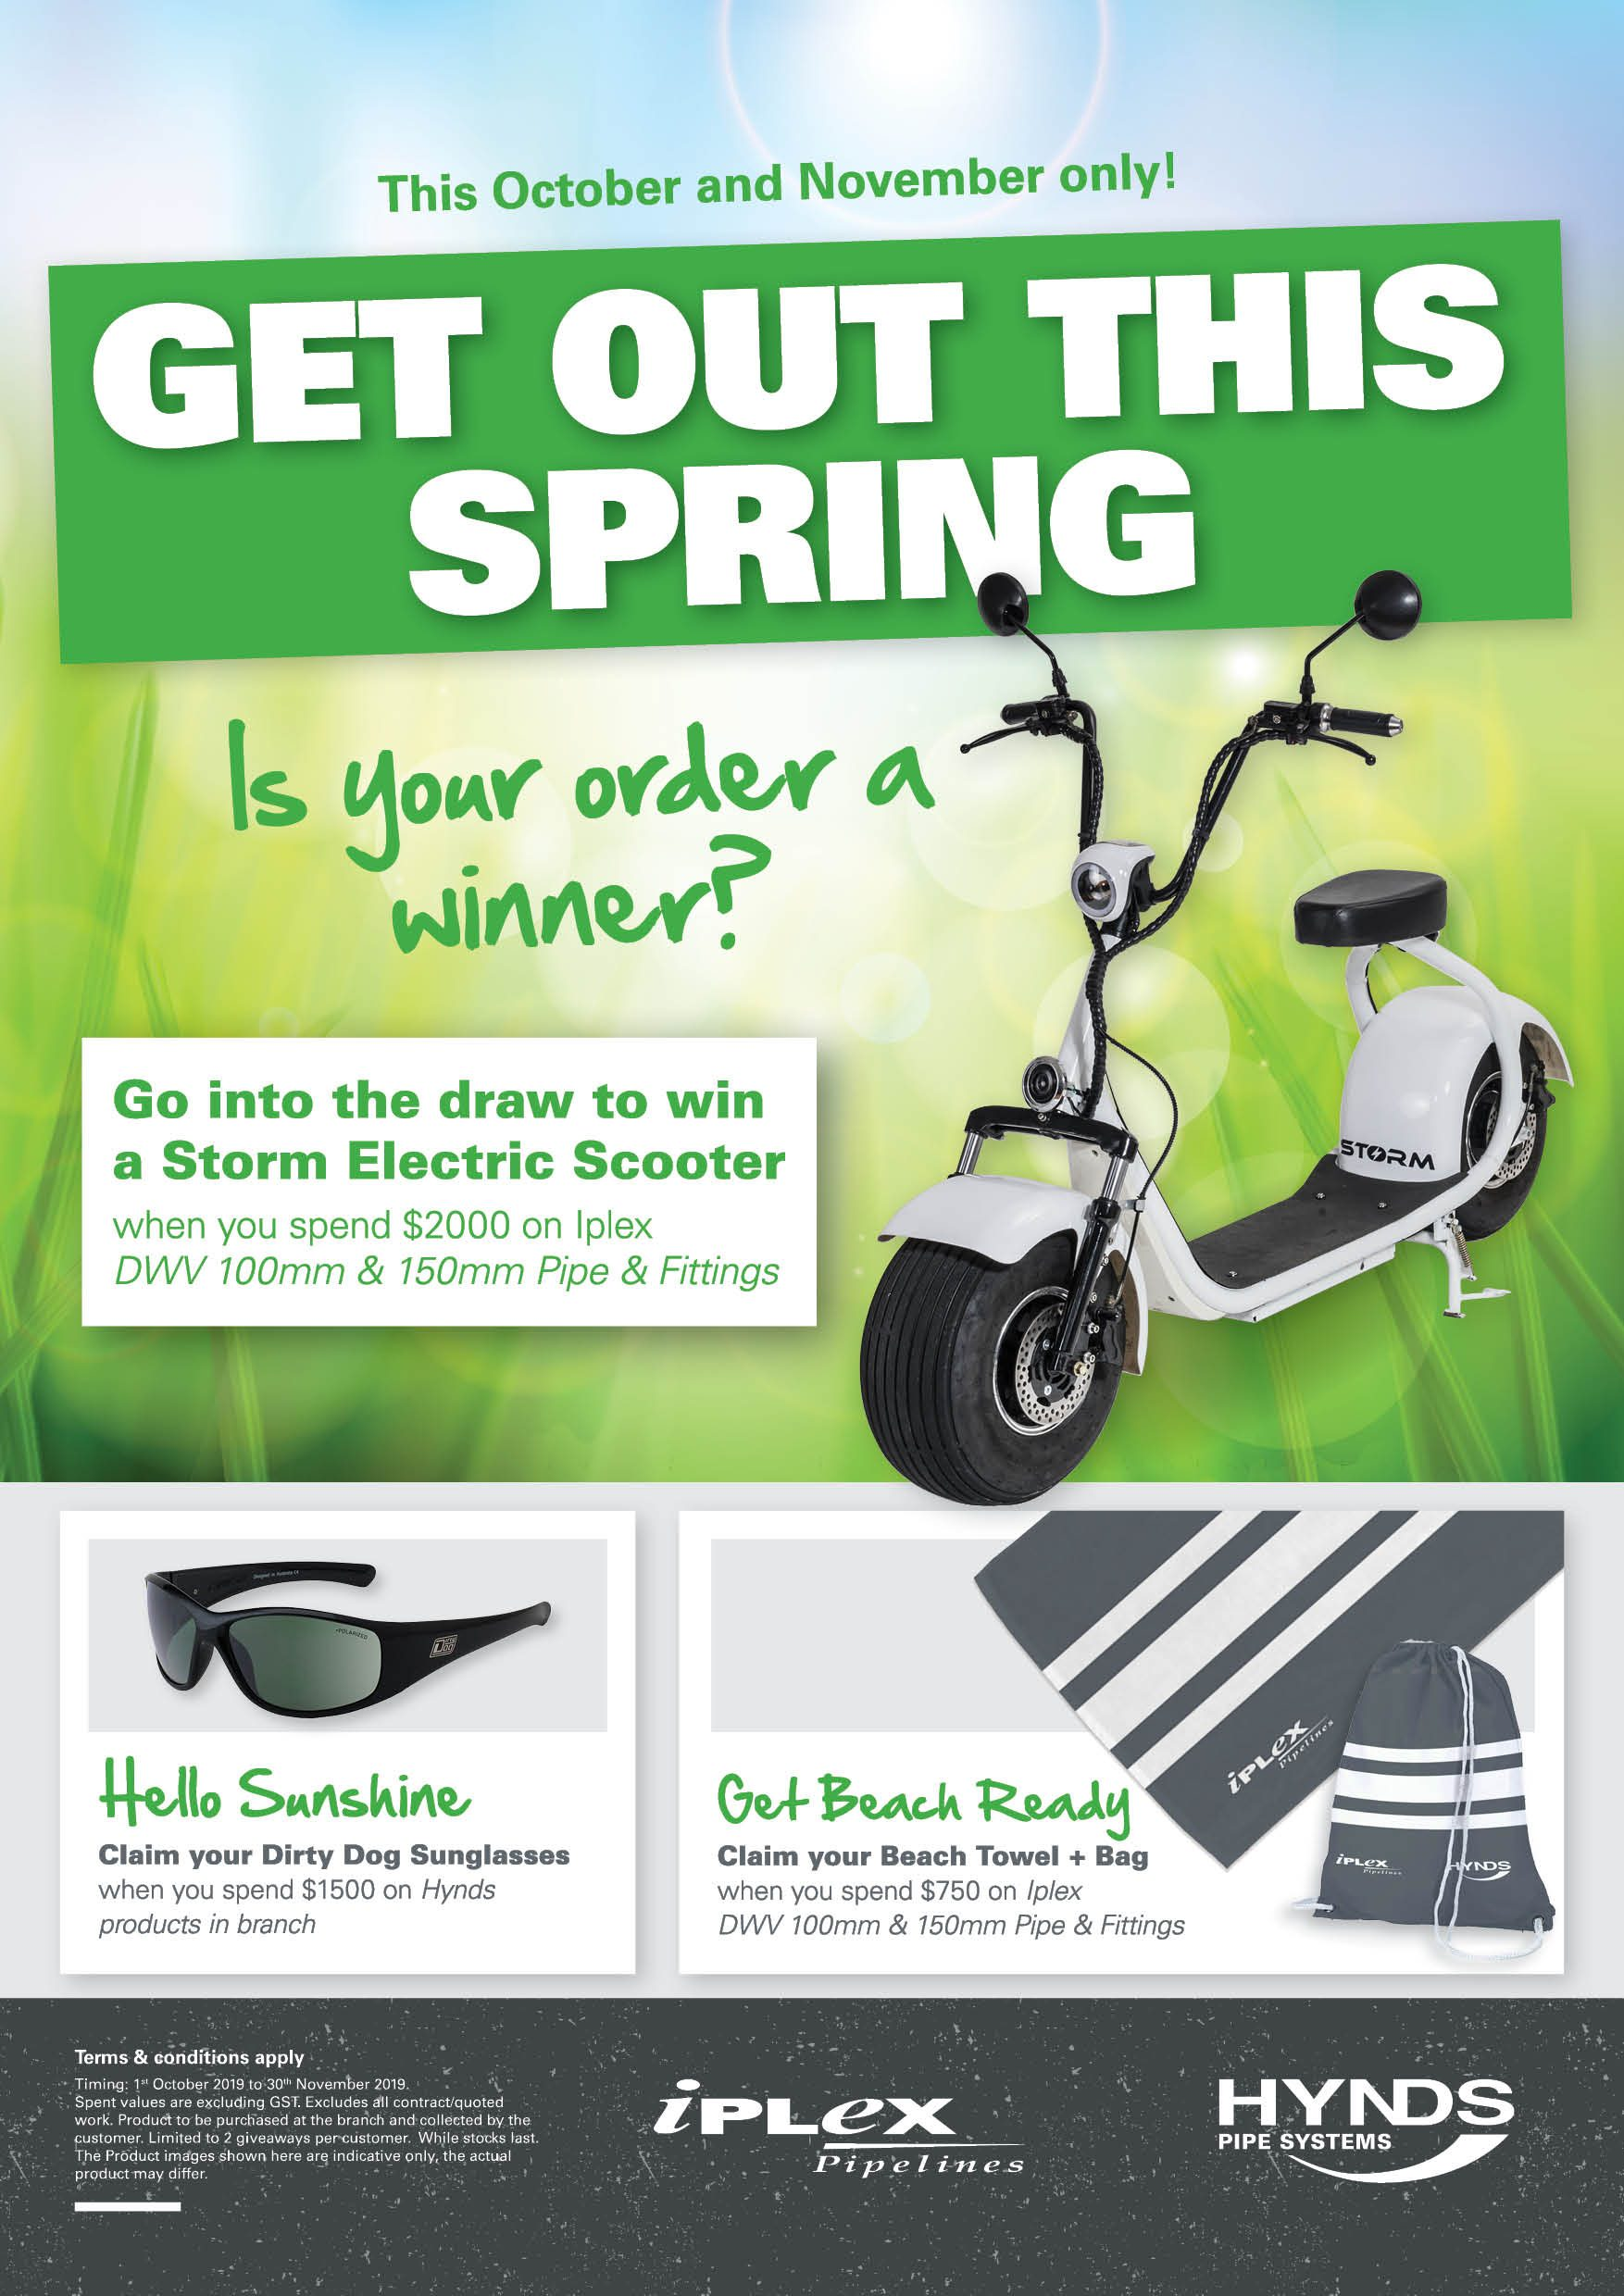 Get out this Spring - Win a scooter